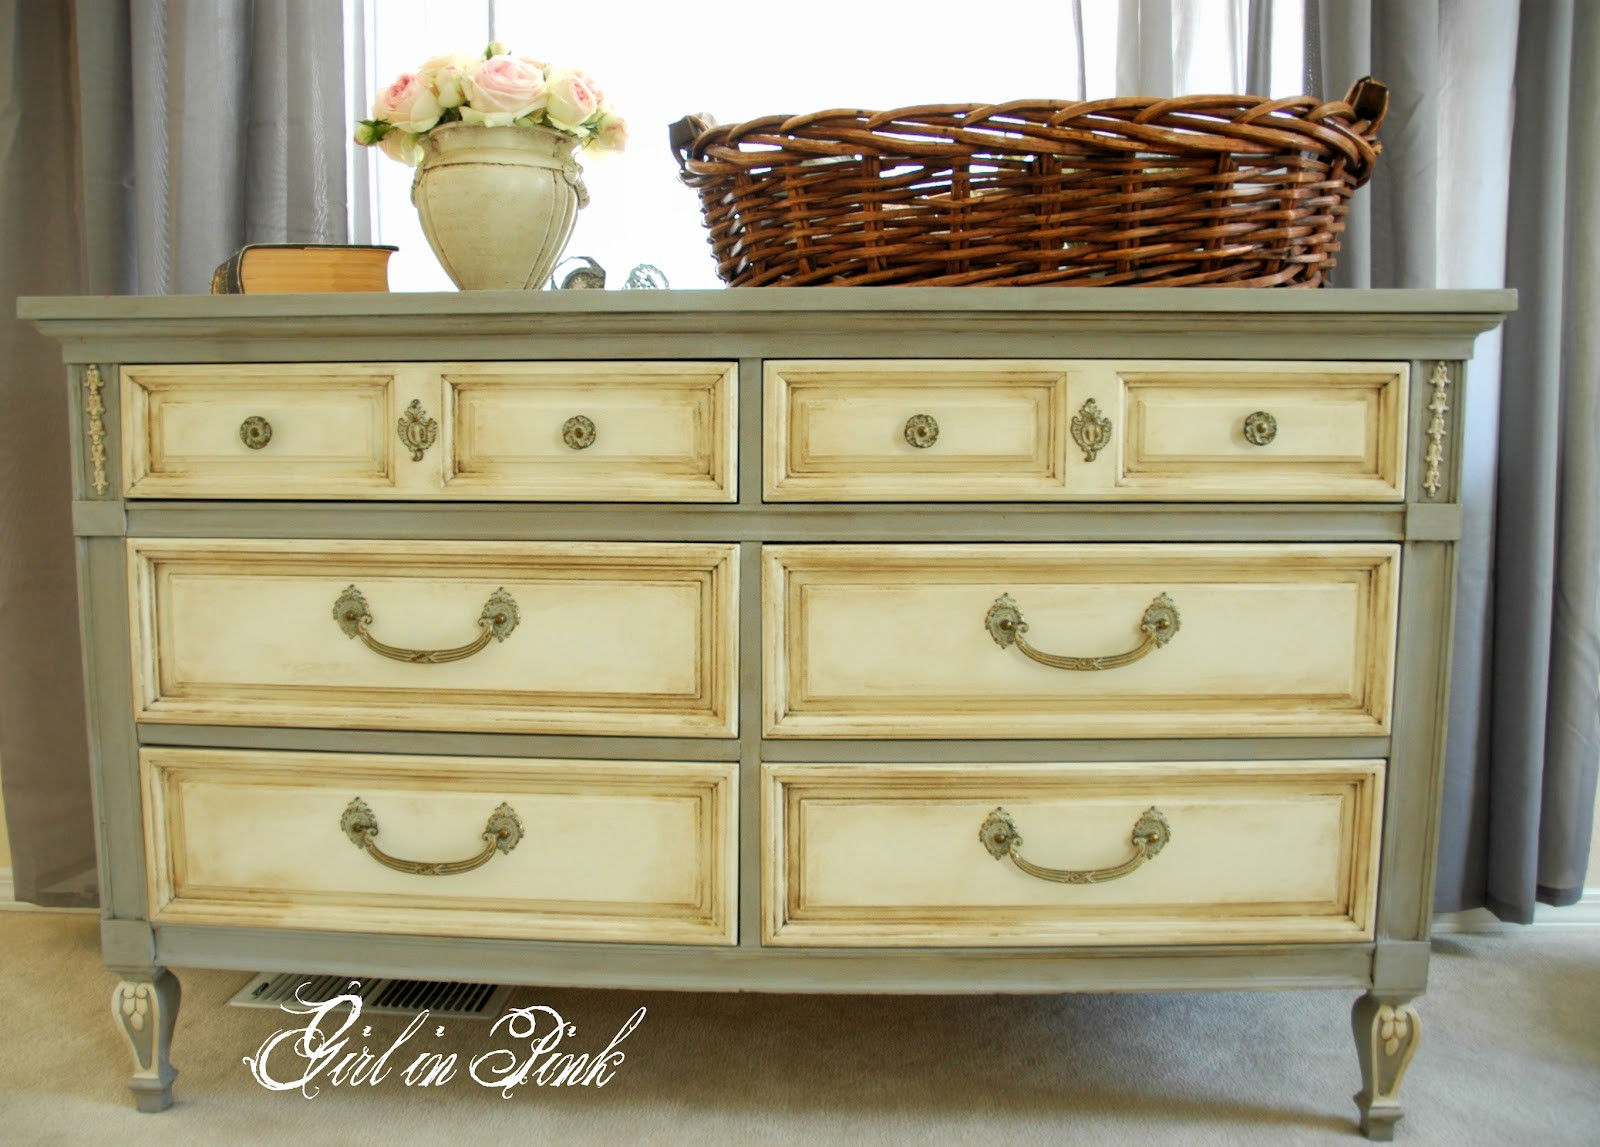 Best ideas about Chalk Painted Furniture Ideas . Save or Pin Shades of Amber Chalk Paint Link Party Now.